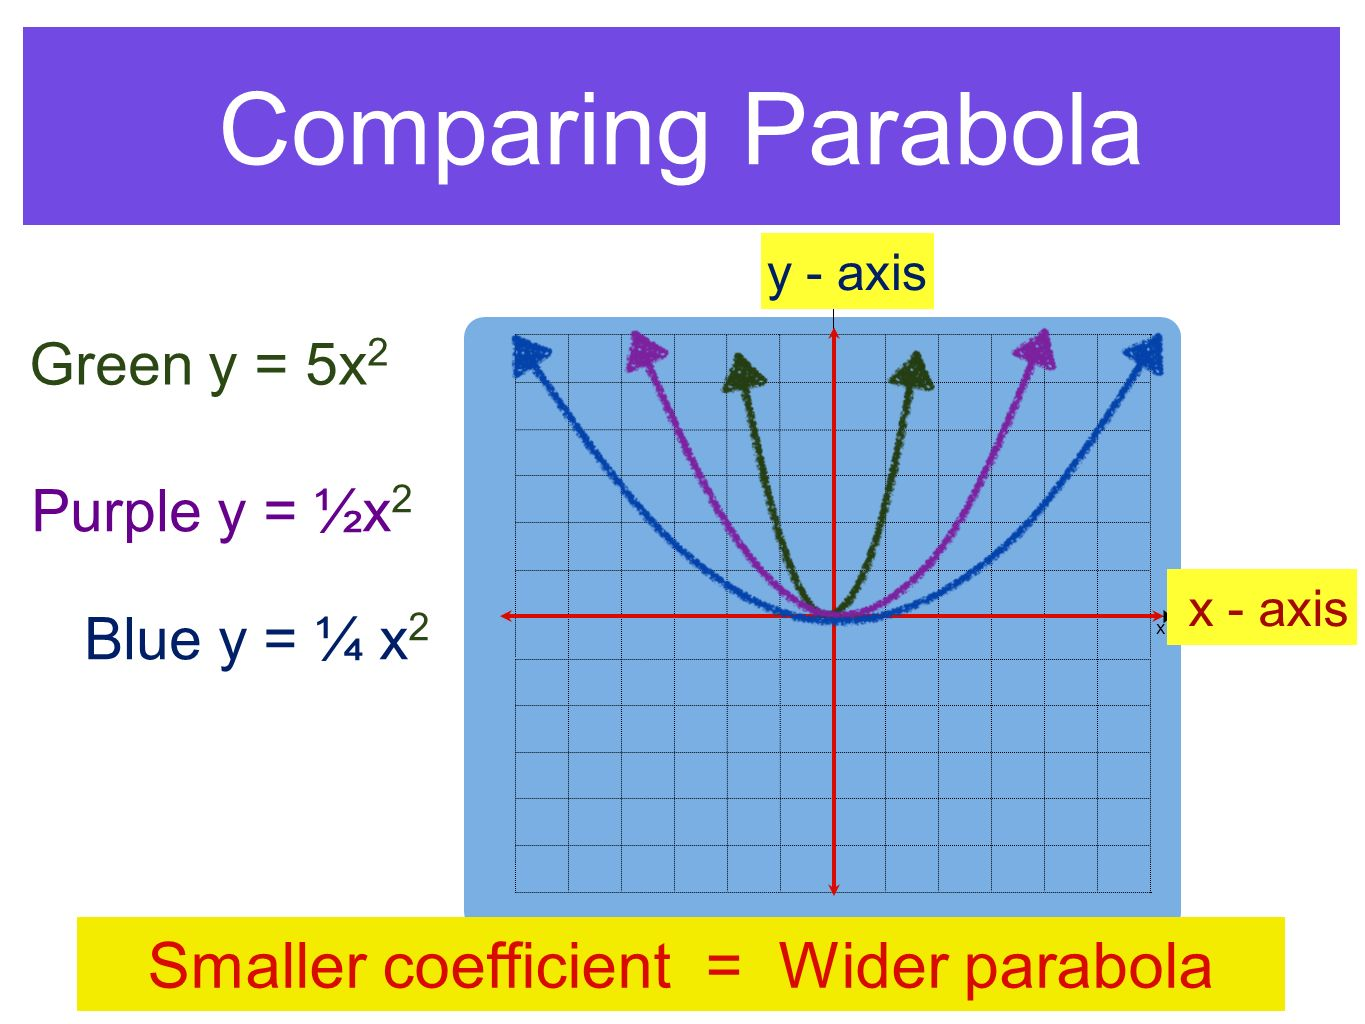 Smaller coefficient = Wider parabola